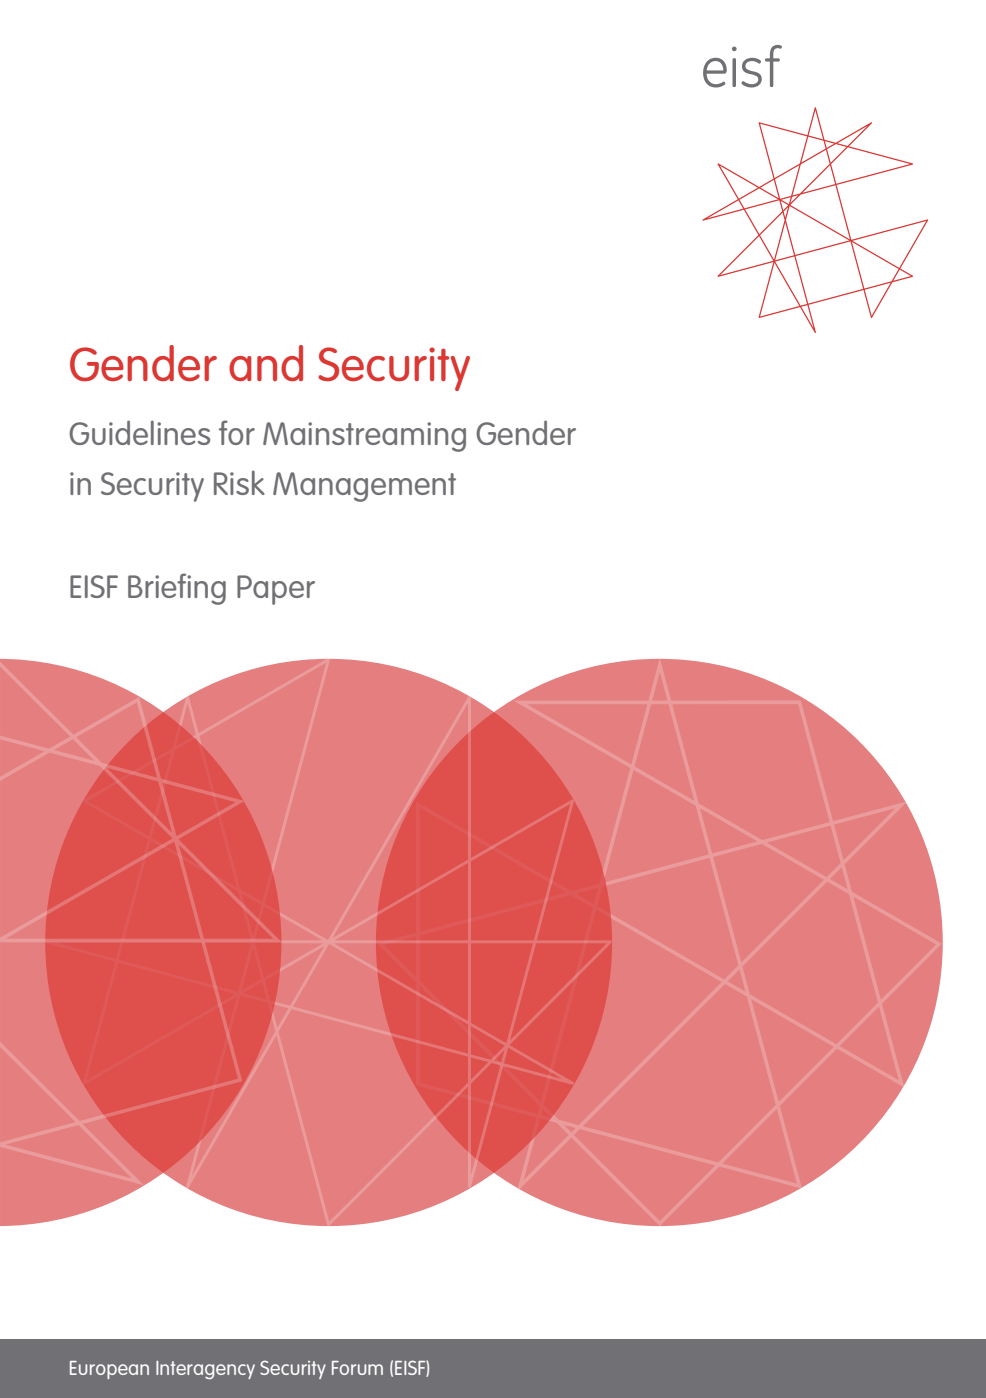 Gender and Security: Guidelines for mainstreaming gender in security risk management